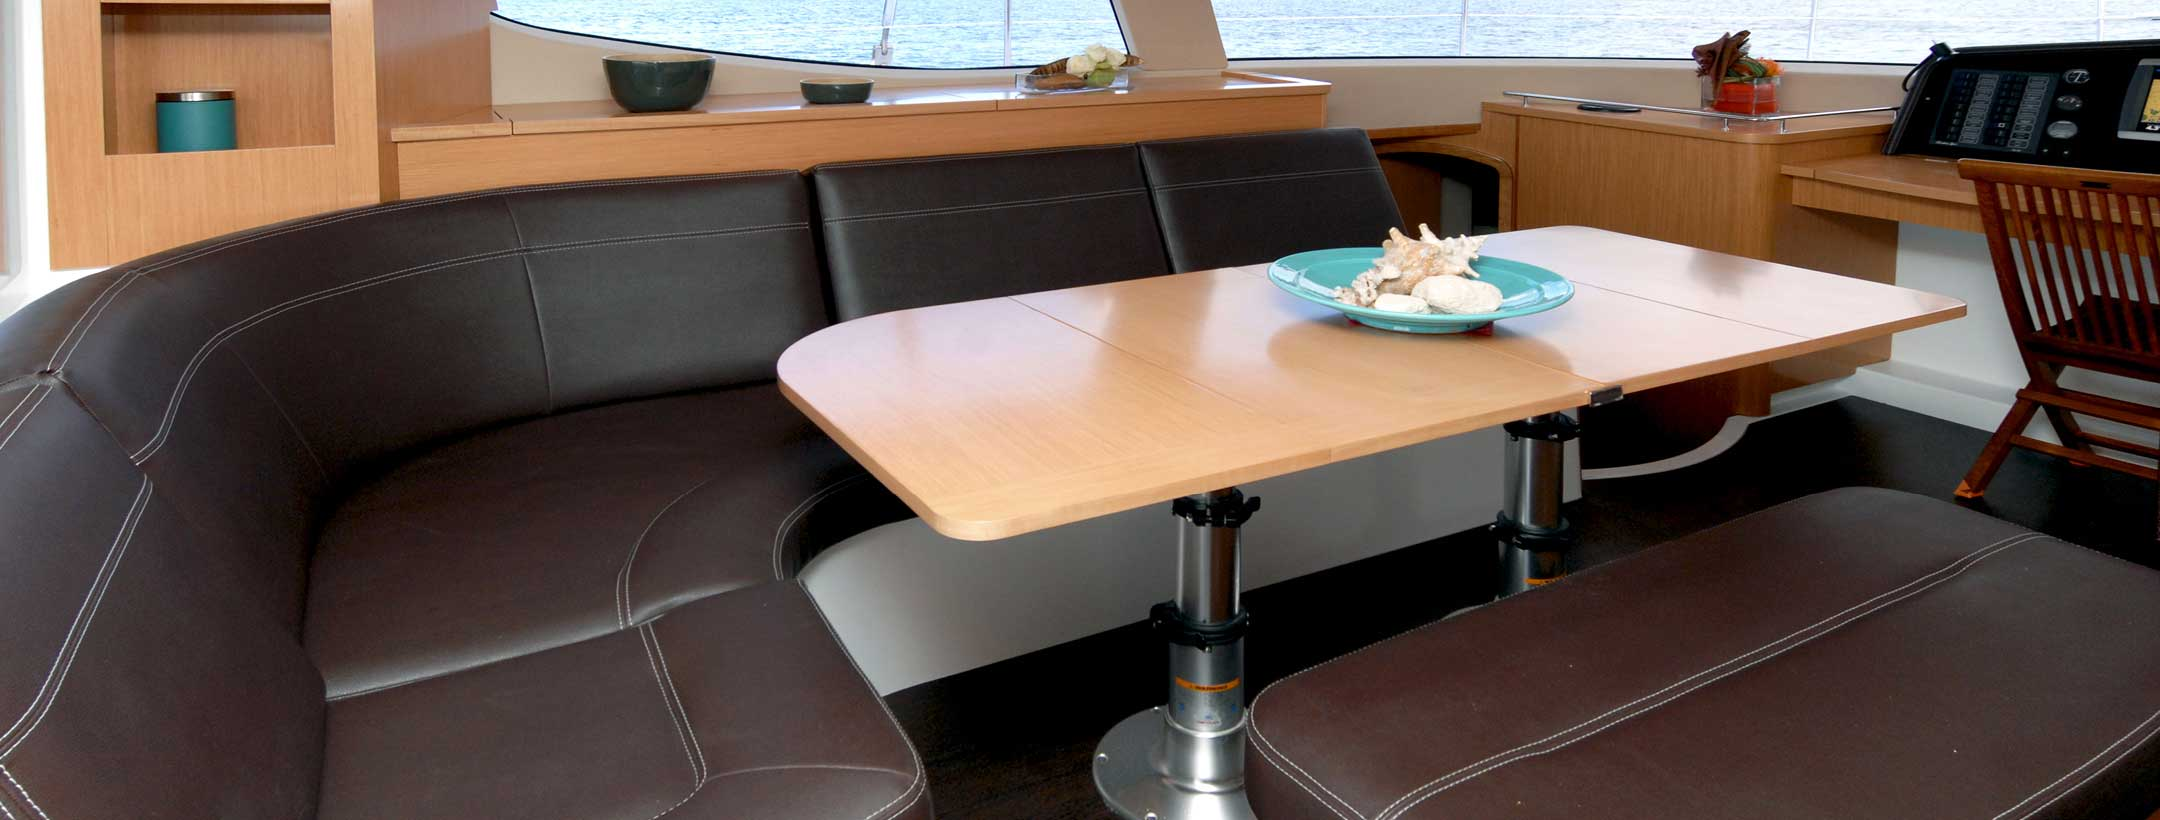 TradeWinds 50 Cruising Class Yacht indoor dining area